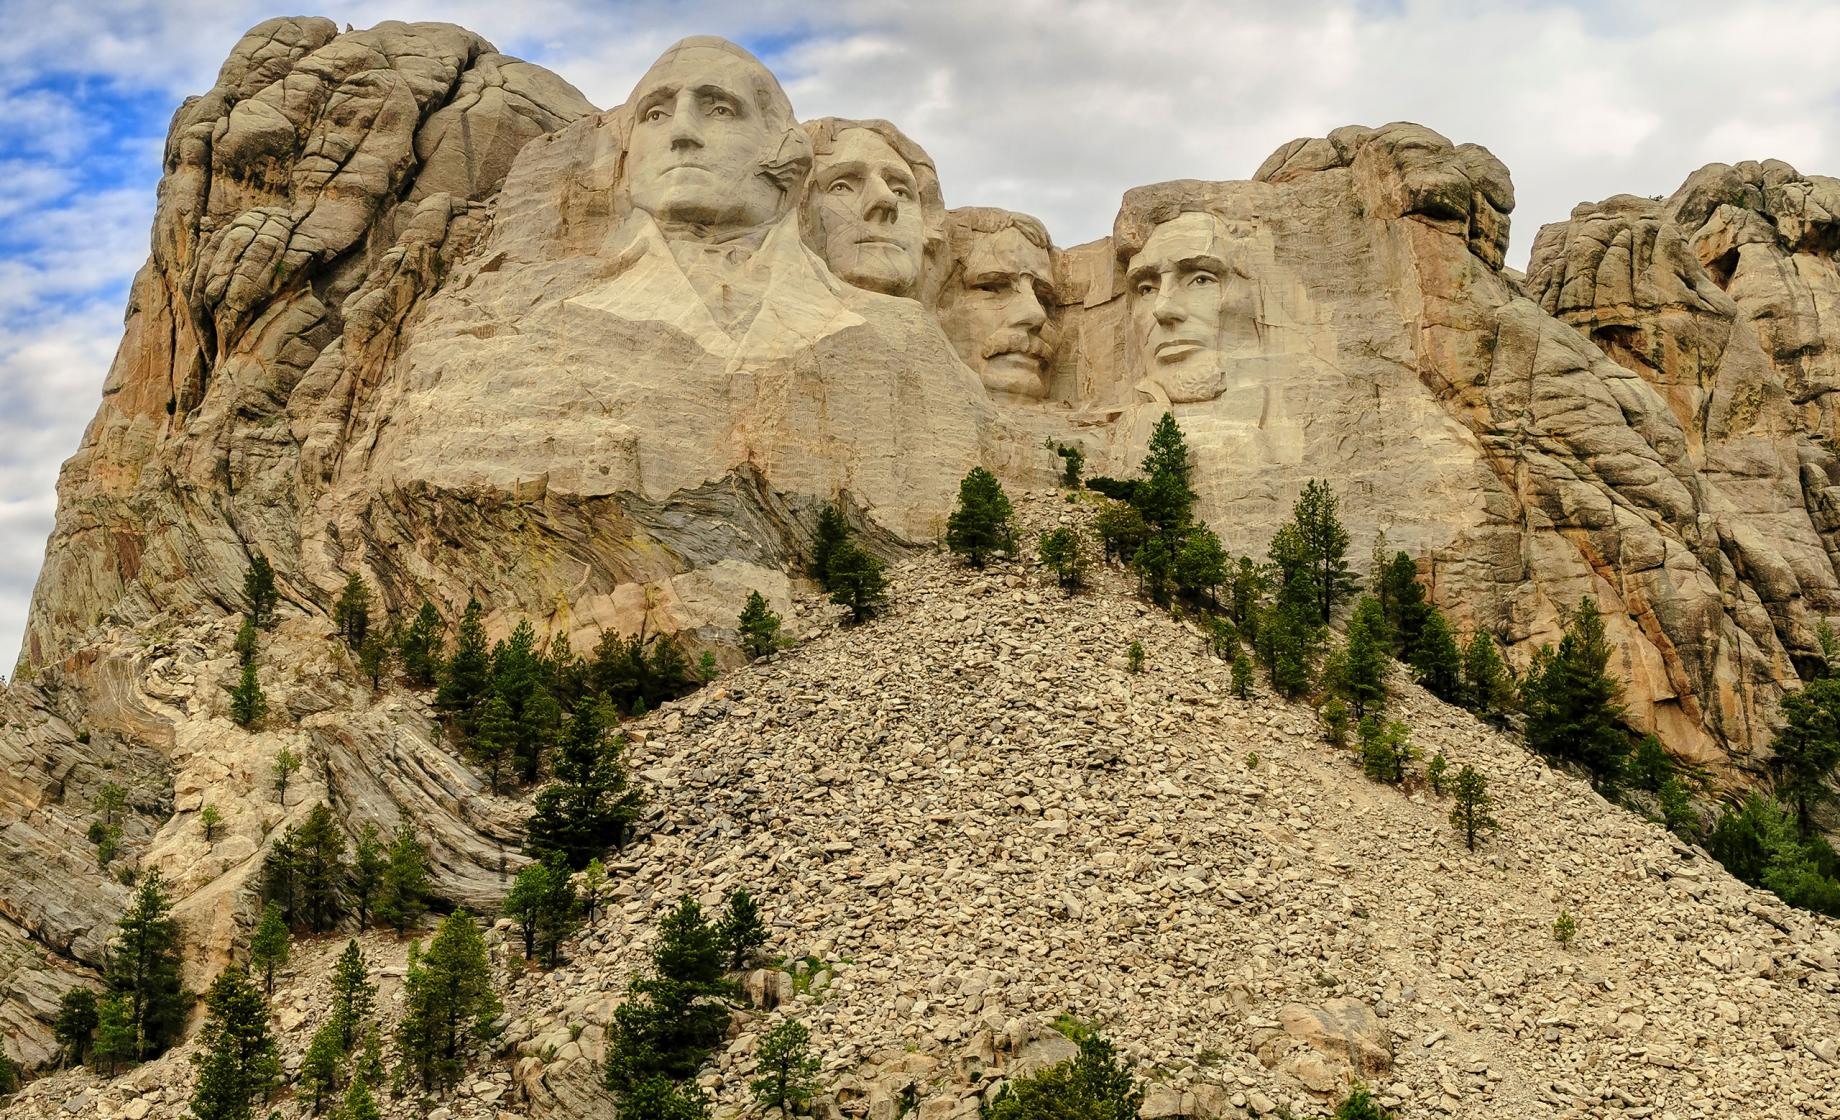 Fact check: No, the U.S. didn't 'steal' the land where Mount Rushmore sits from the 'original occupiers'